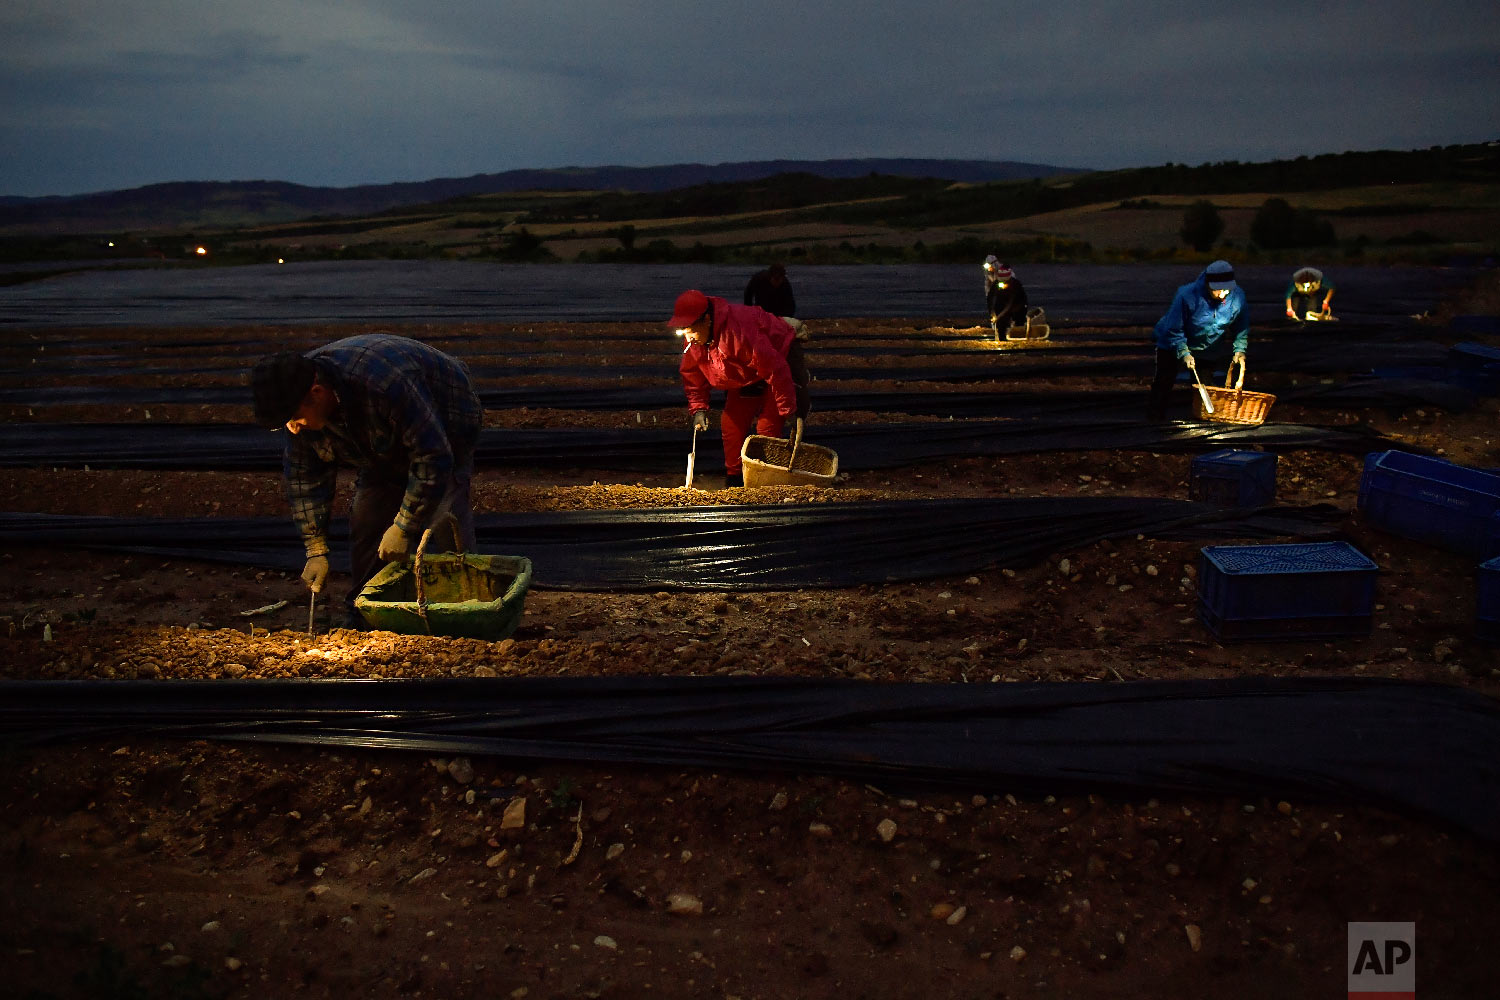 Seasonal workers collect white asparagus from the field using lanterns in Uterga, around 15 km (9 miles) from Pamplona, northern Spain on Saturday, June 2, 2018 (AP Photo/Alvaro Barrientos)